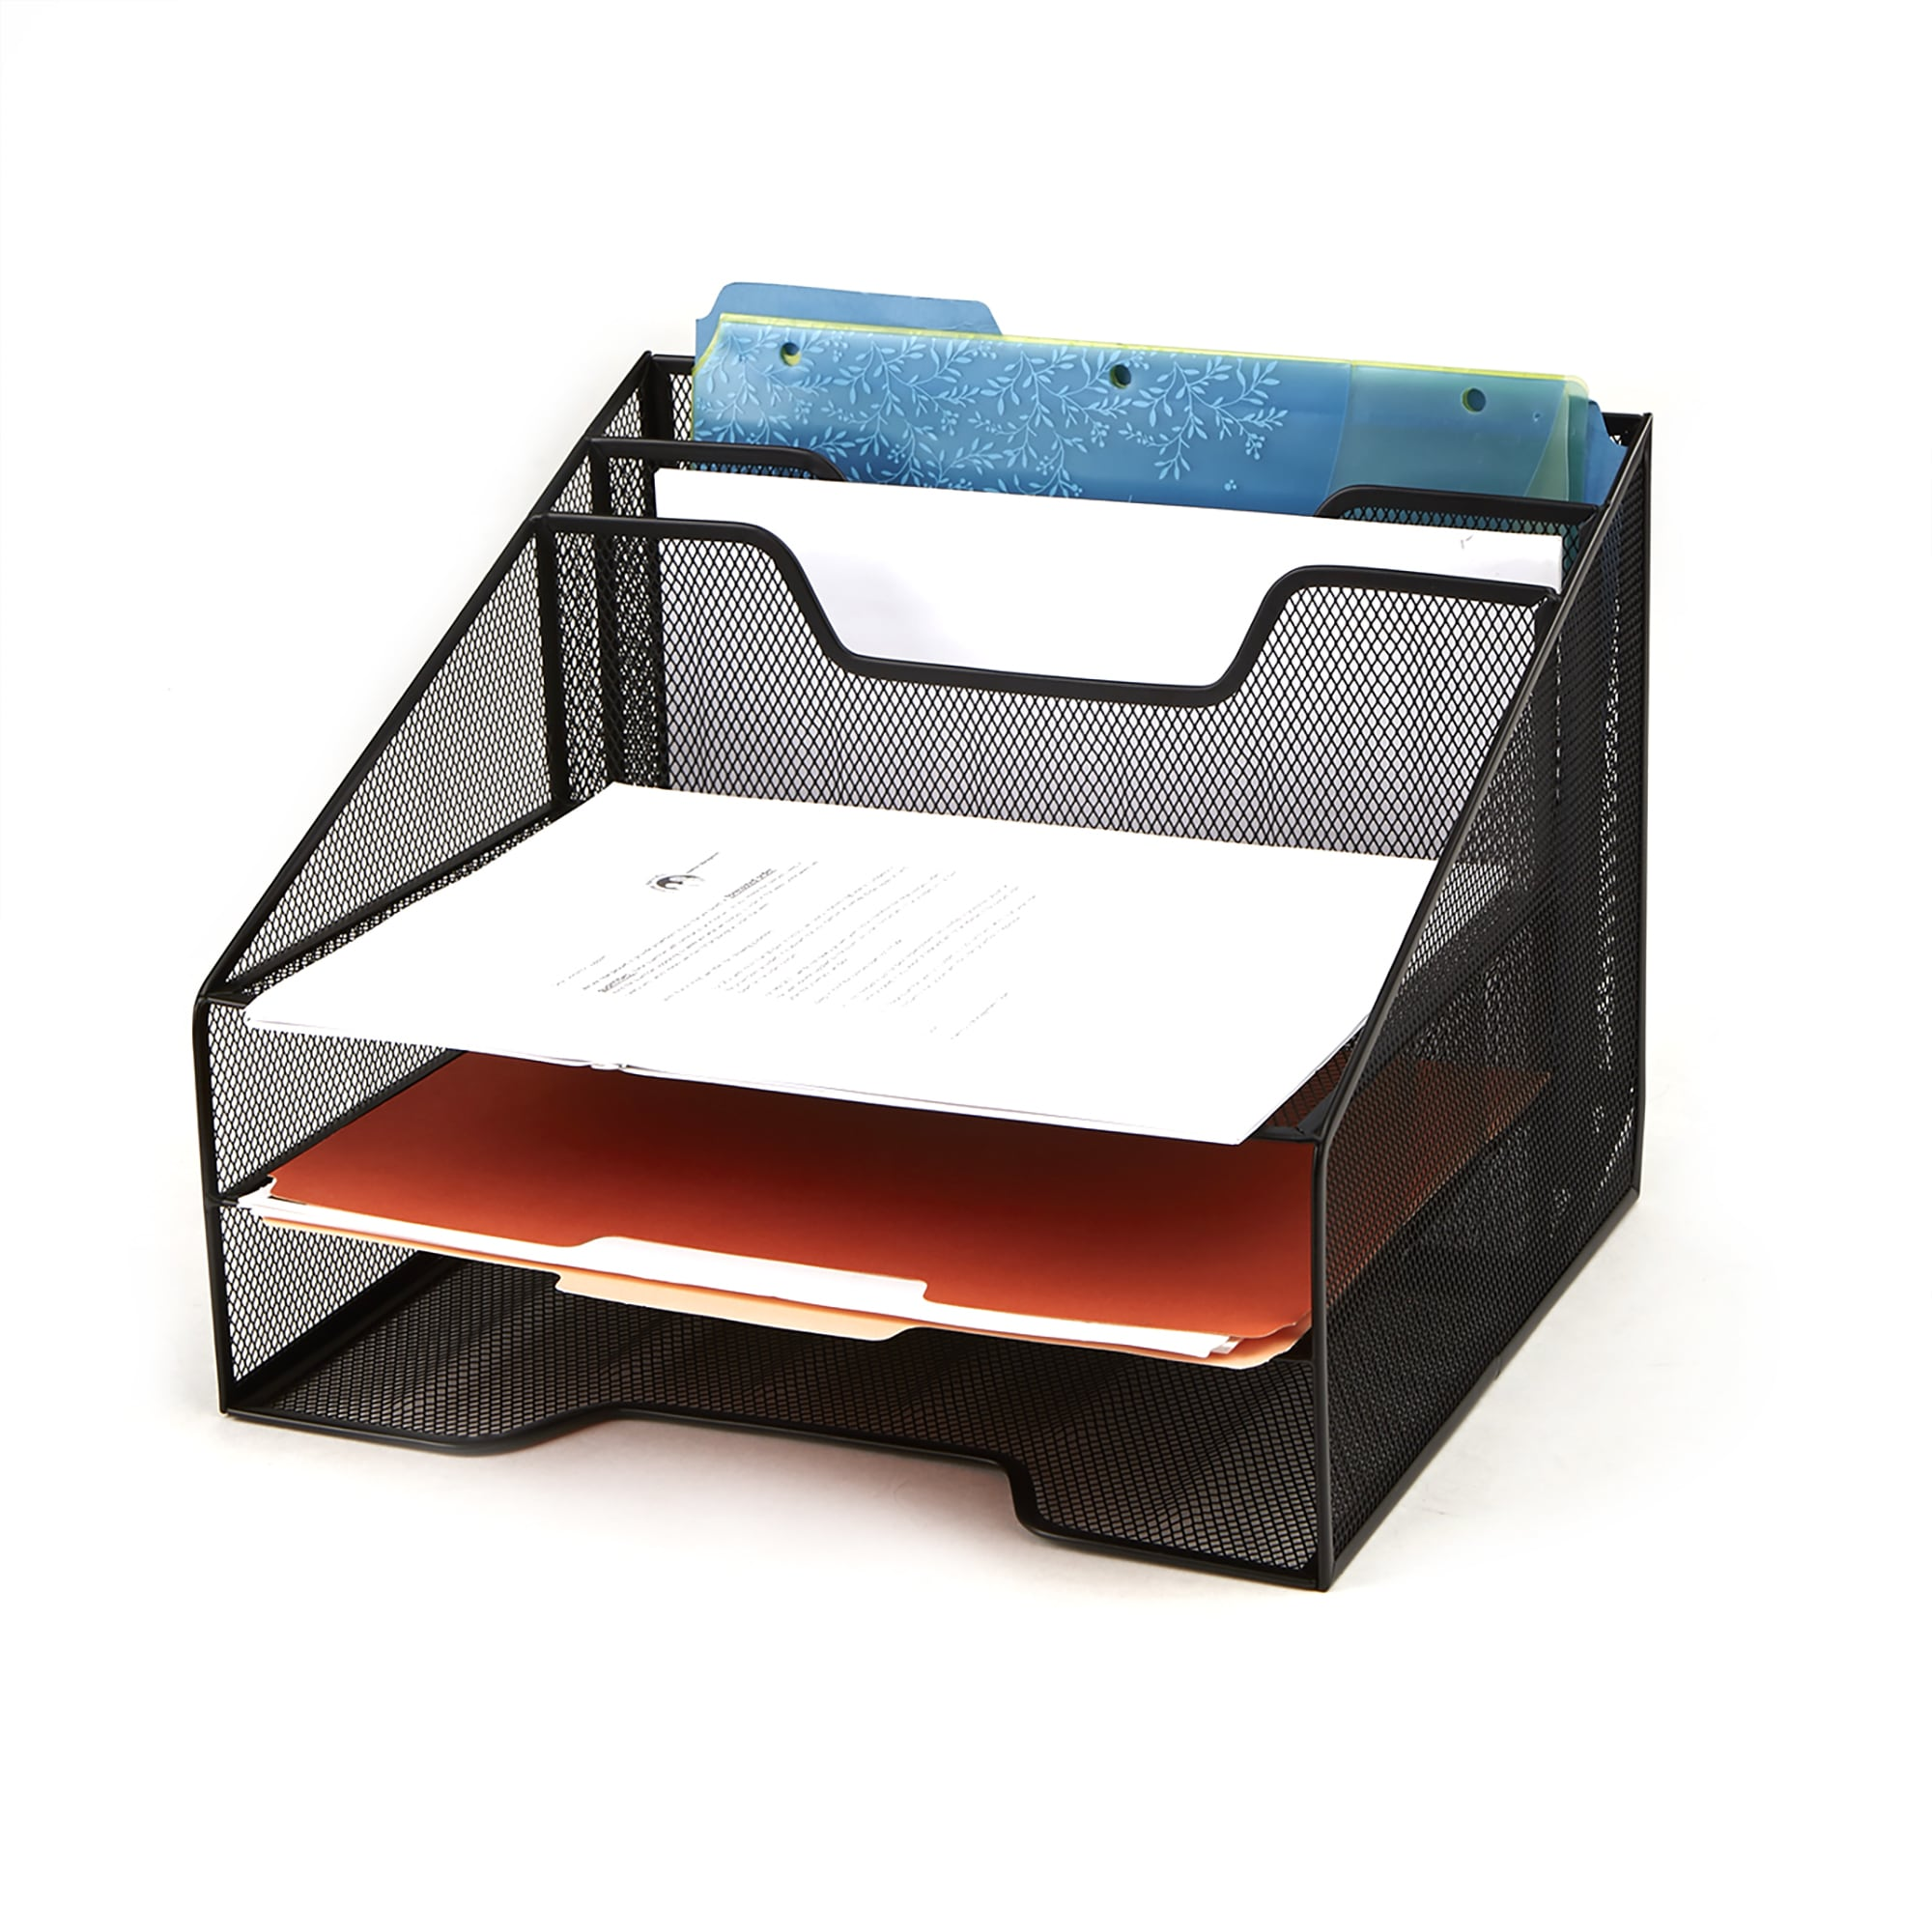 dokument organiser compartments ikea products tidy can silver papers you letter access as small be paper tray en your desk pulled the media organisers easily organizer colour gb storage